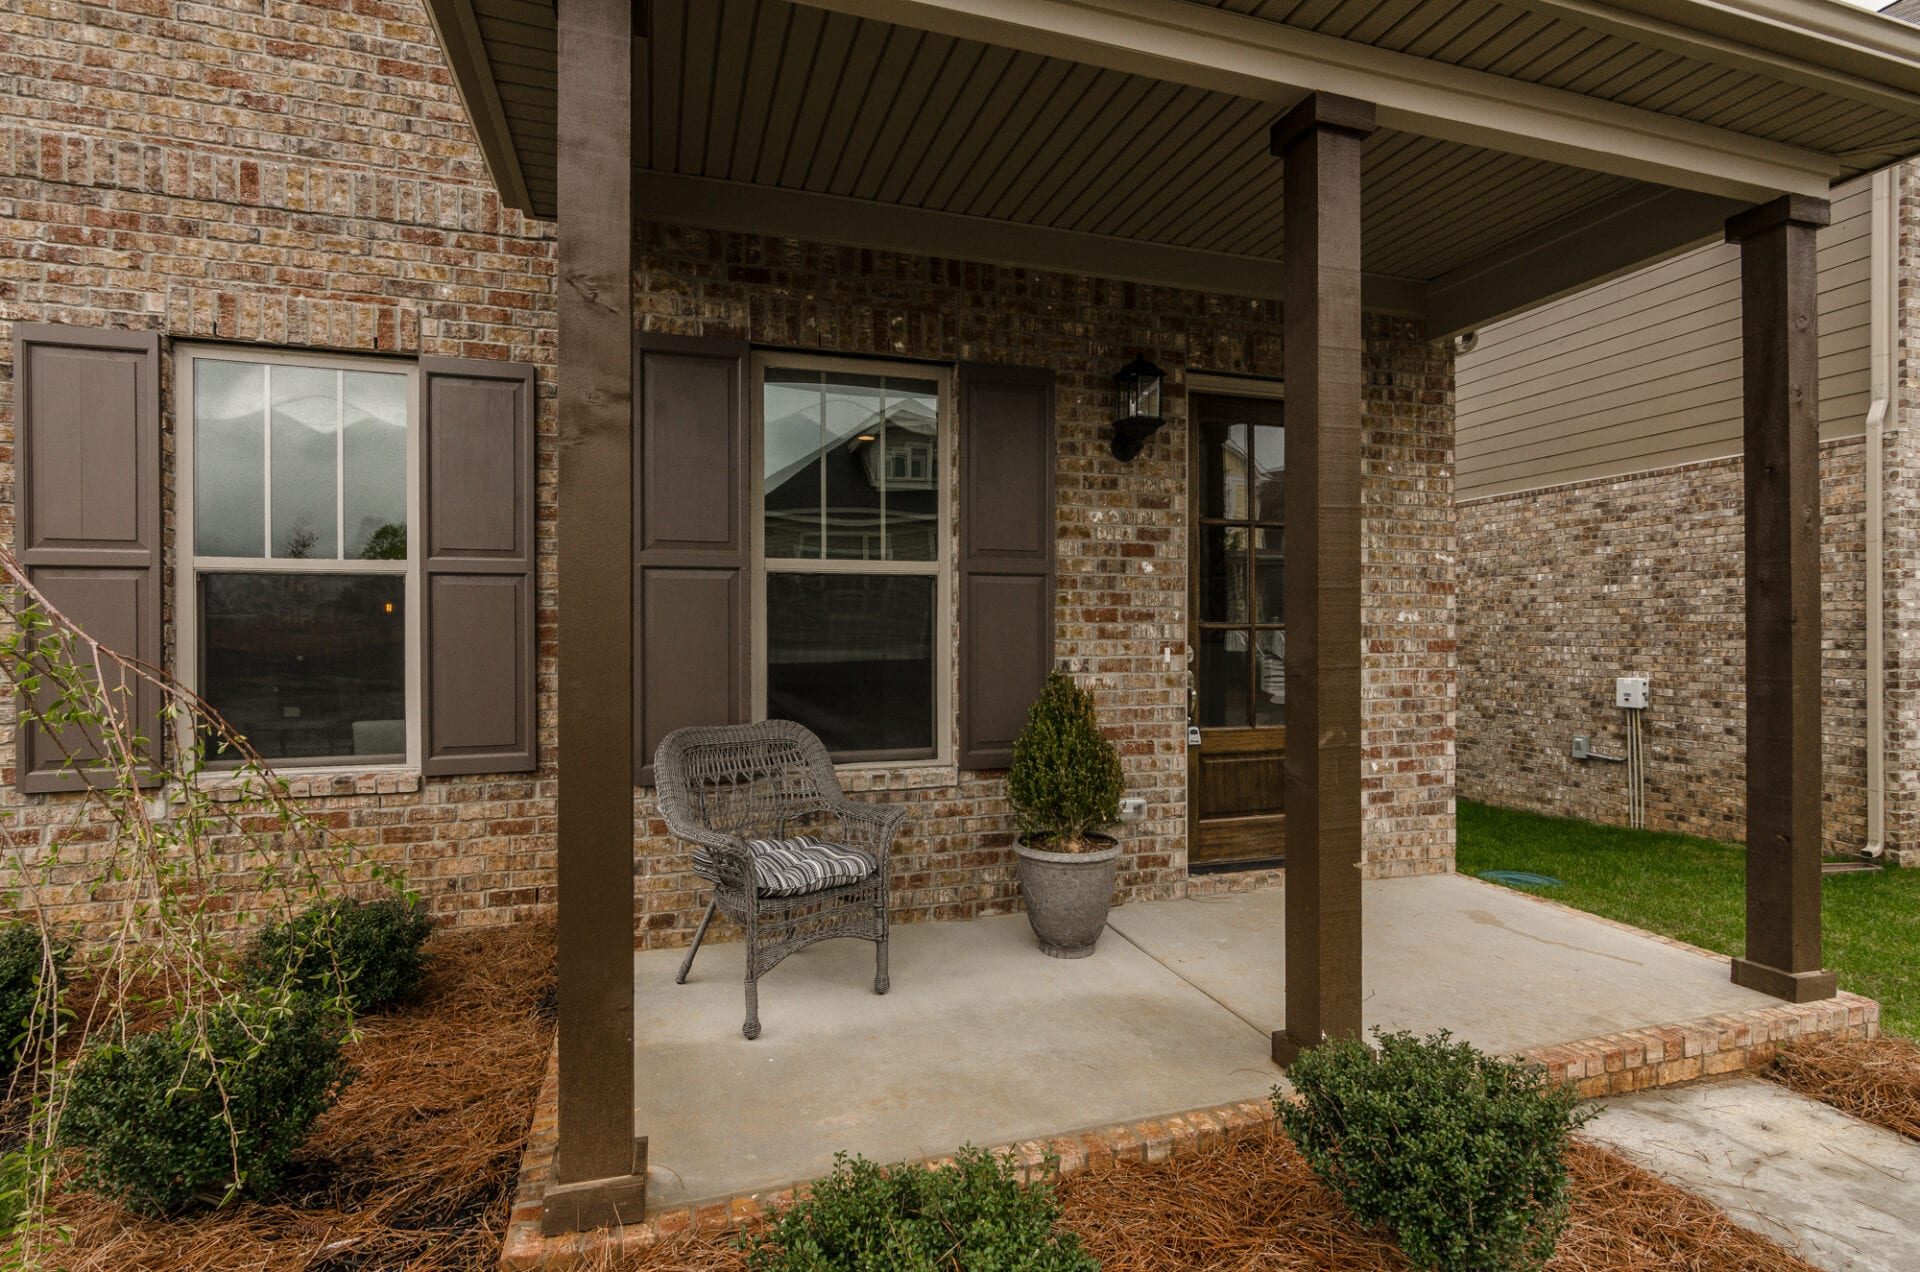 New Home for Sale in Magnolia Grove, one of Murfreesboro's new home communities.